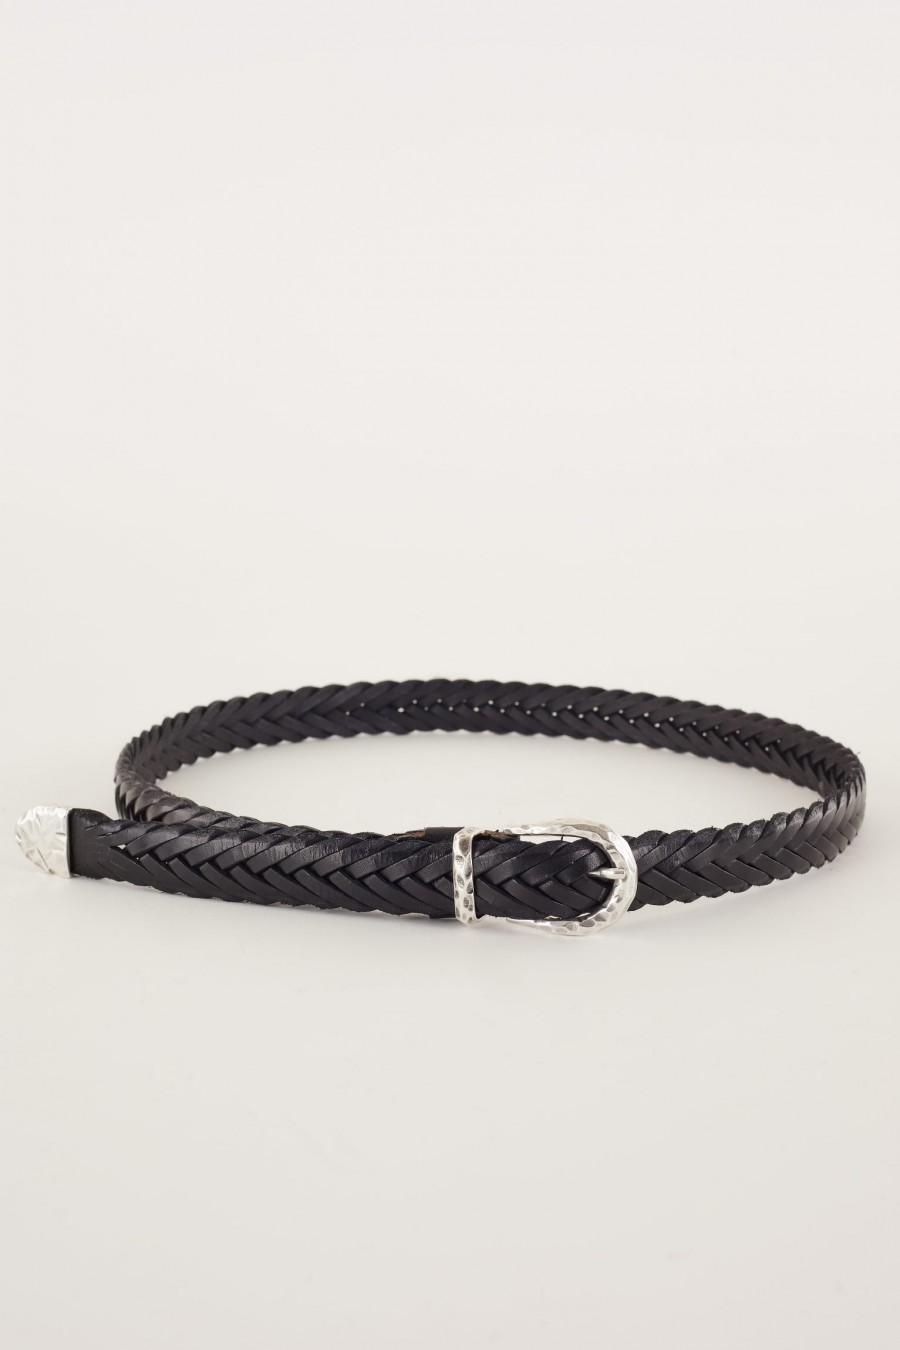 Woven leather belt made in Italy